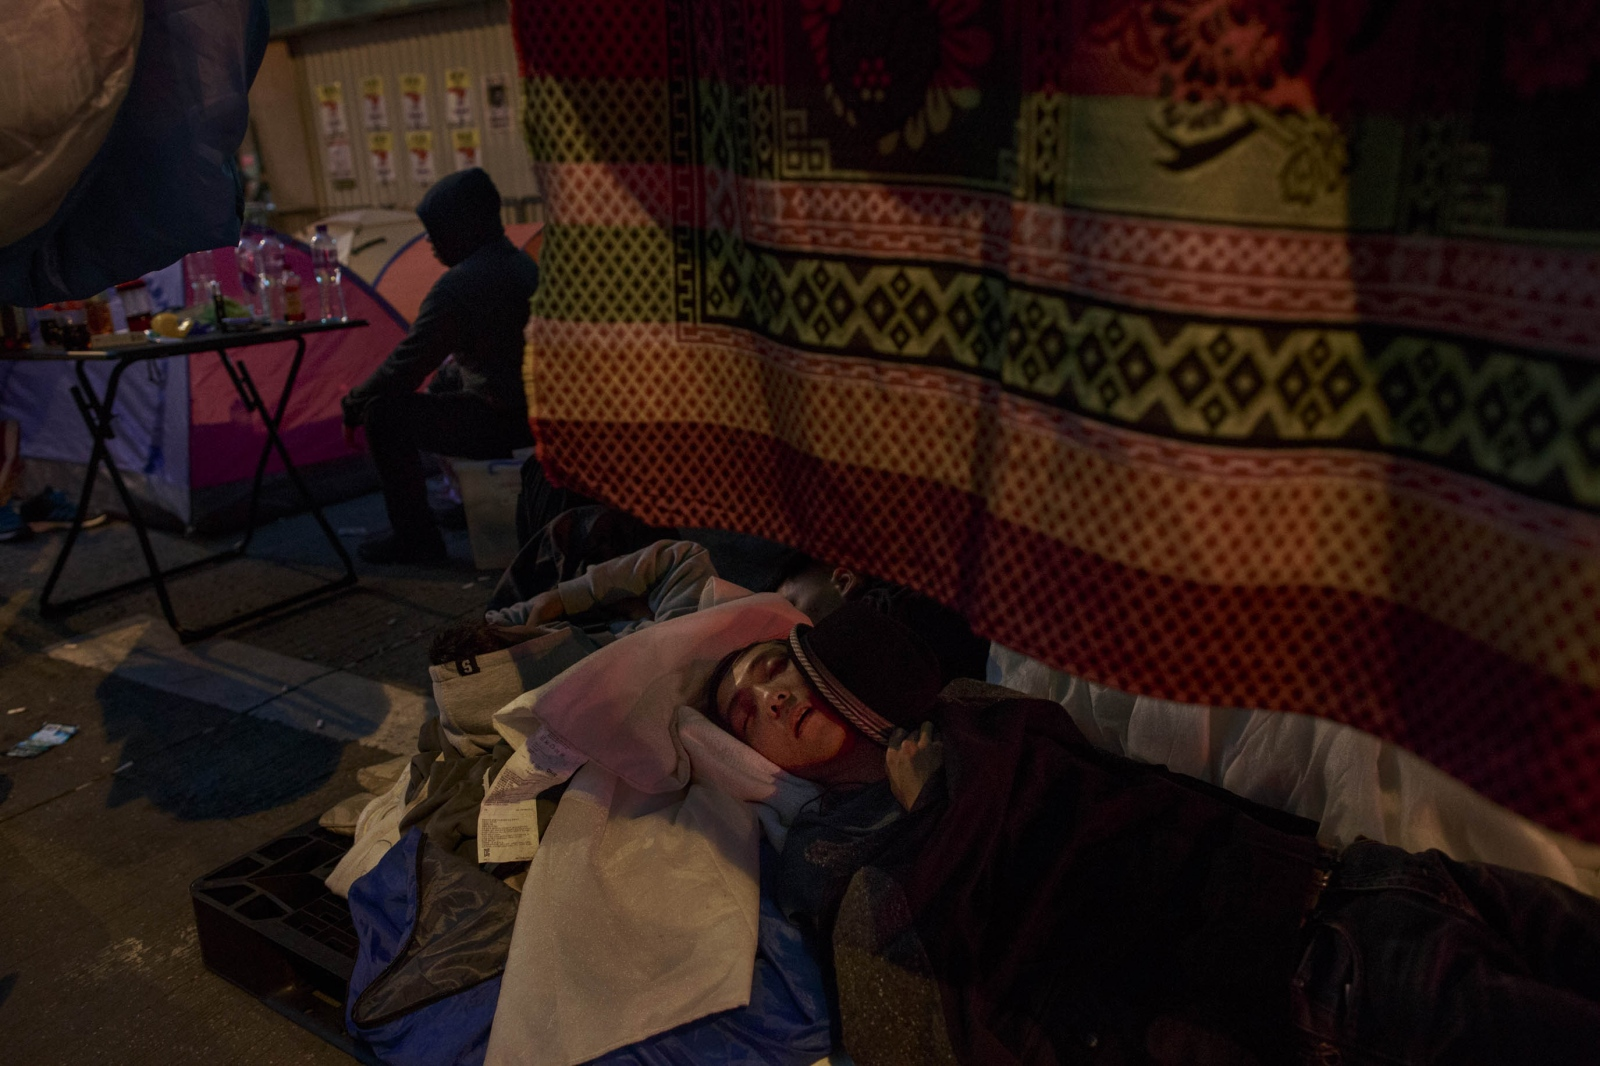 A protestor sleeps in a makeshift tent in the Mong Kok district of Hong Kong, on November 25, 2014. Pro-democracy demonstrators blocked and camped on major thoroughfares and roads of the city for just over two months, calling for universal suffrage in 2017 with the right to elect the city's own chief executive-- without Beijing's pre-approval of candidates-- a demand that remains rejected by Beijing.